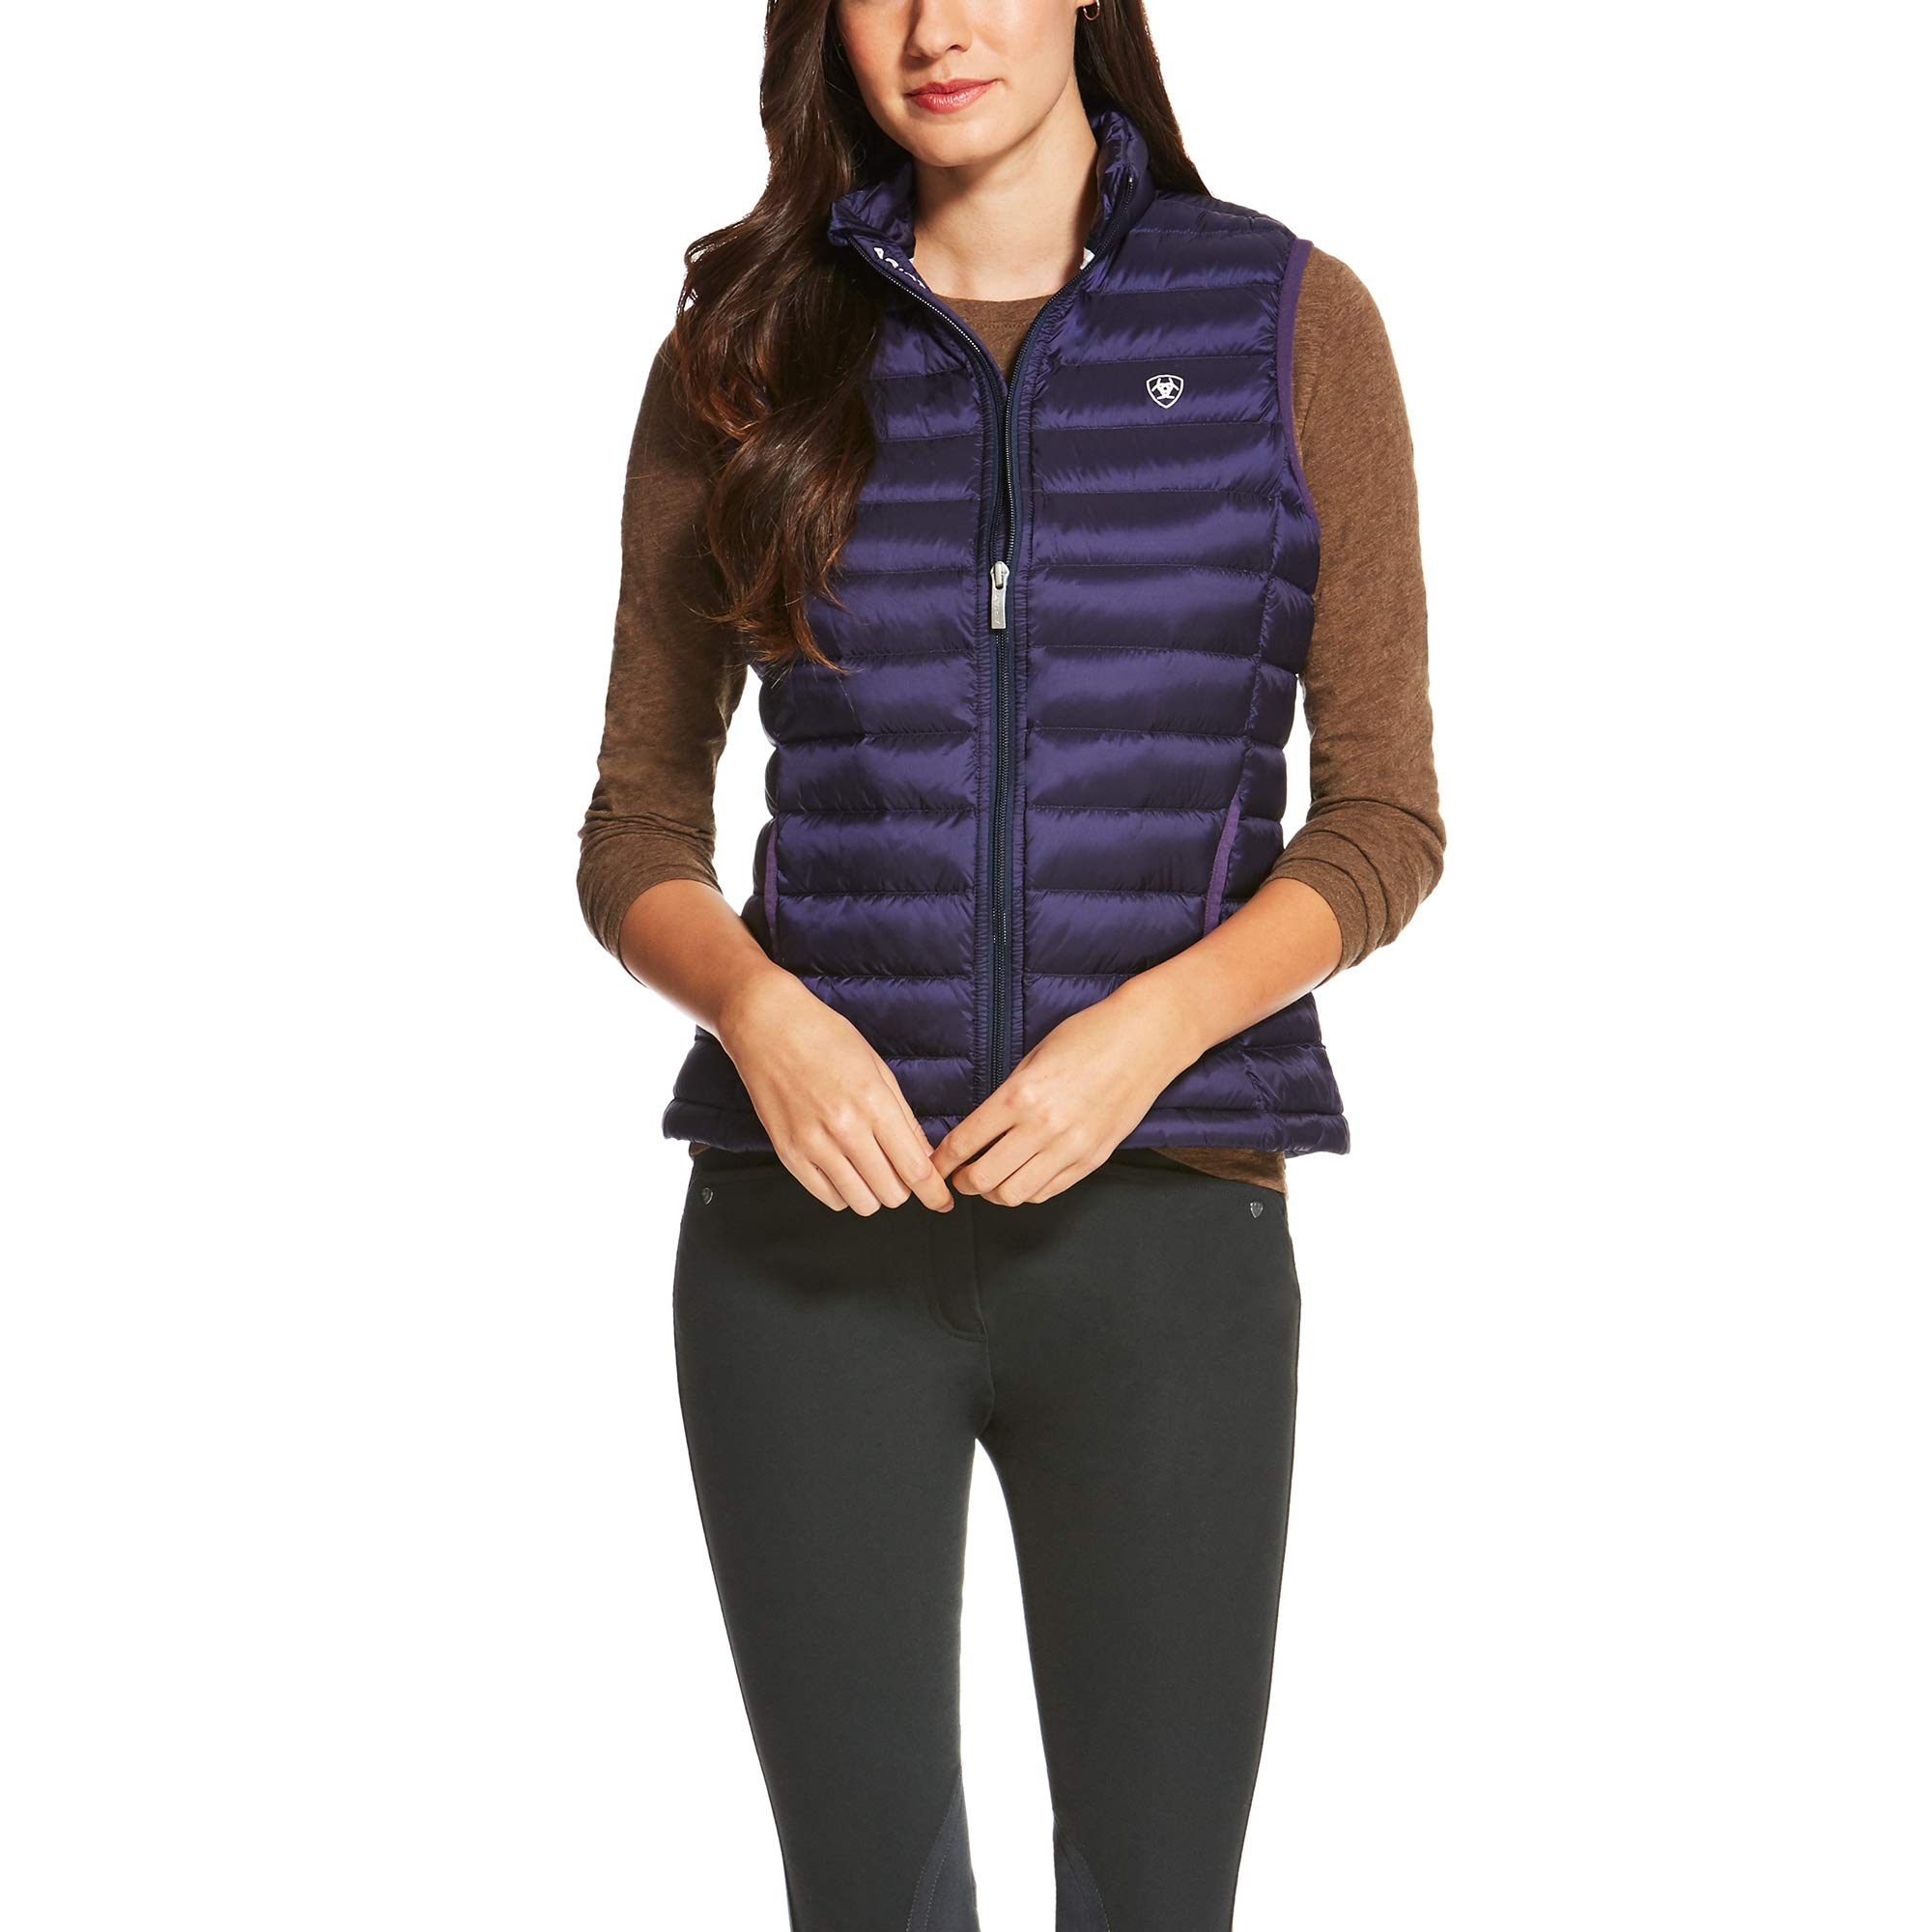 ARIAT Women's Ideal Down Vest Eclipse Size Large by ARIAT